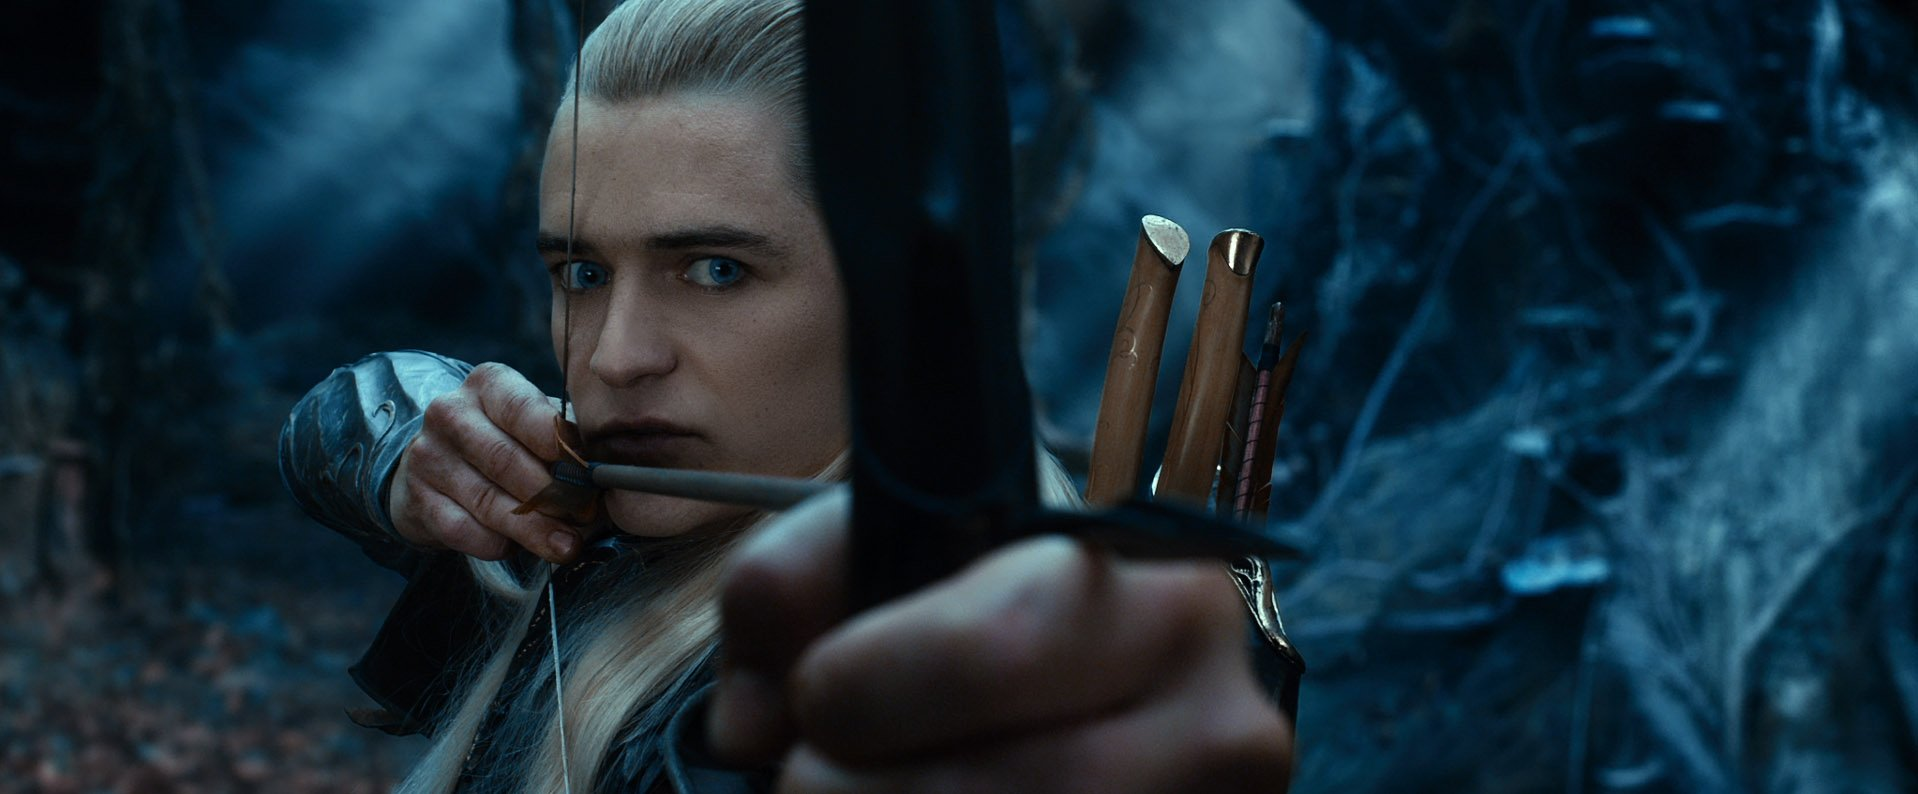 hobbit desolation smaug legolas The Hobbit: The Desolation Of Smaug Gallery